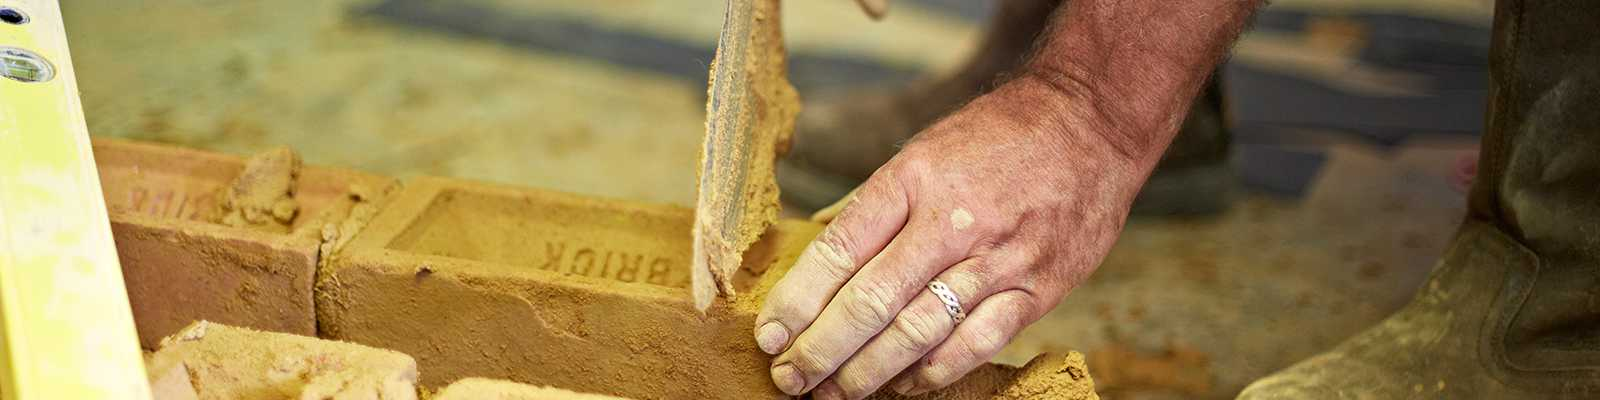 Weekend Bricklaying Courses